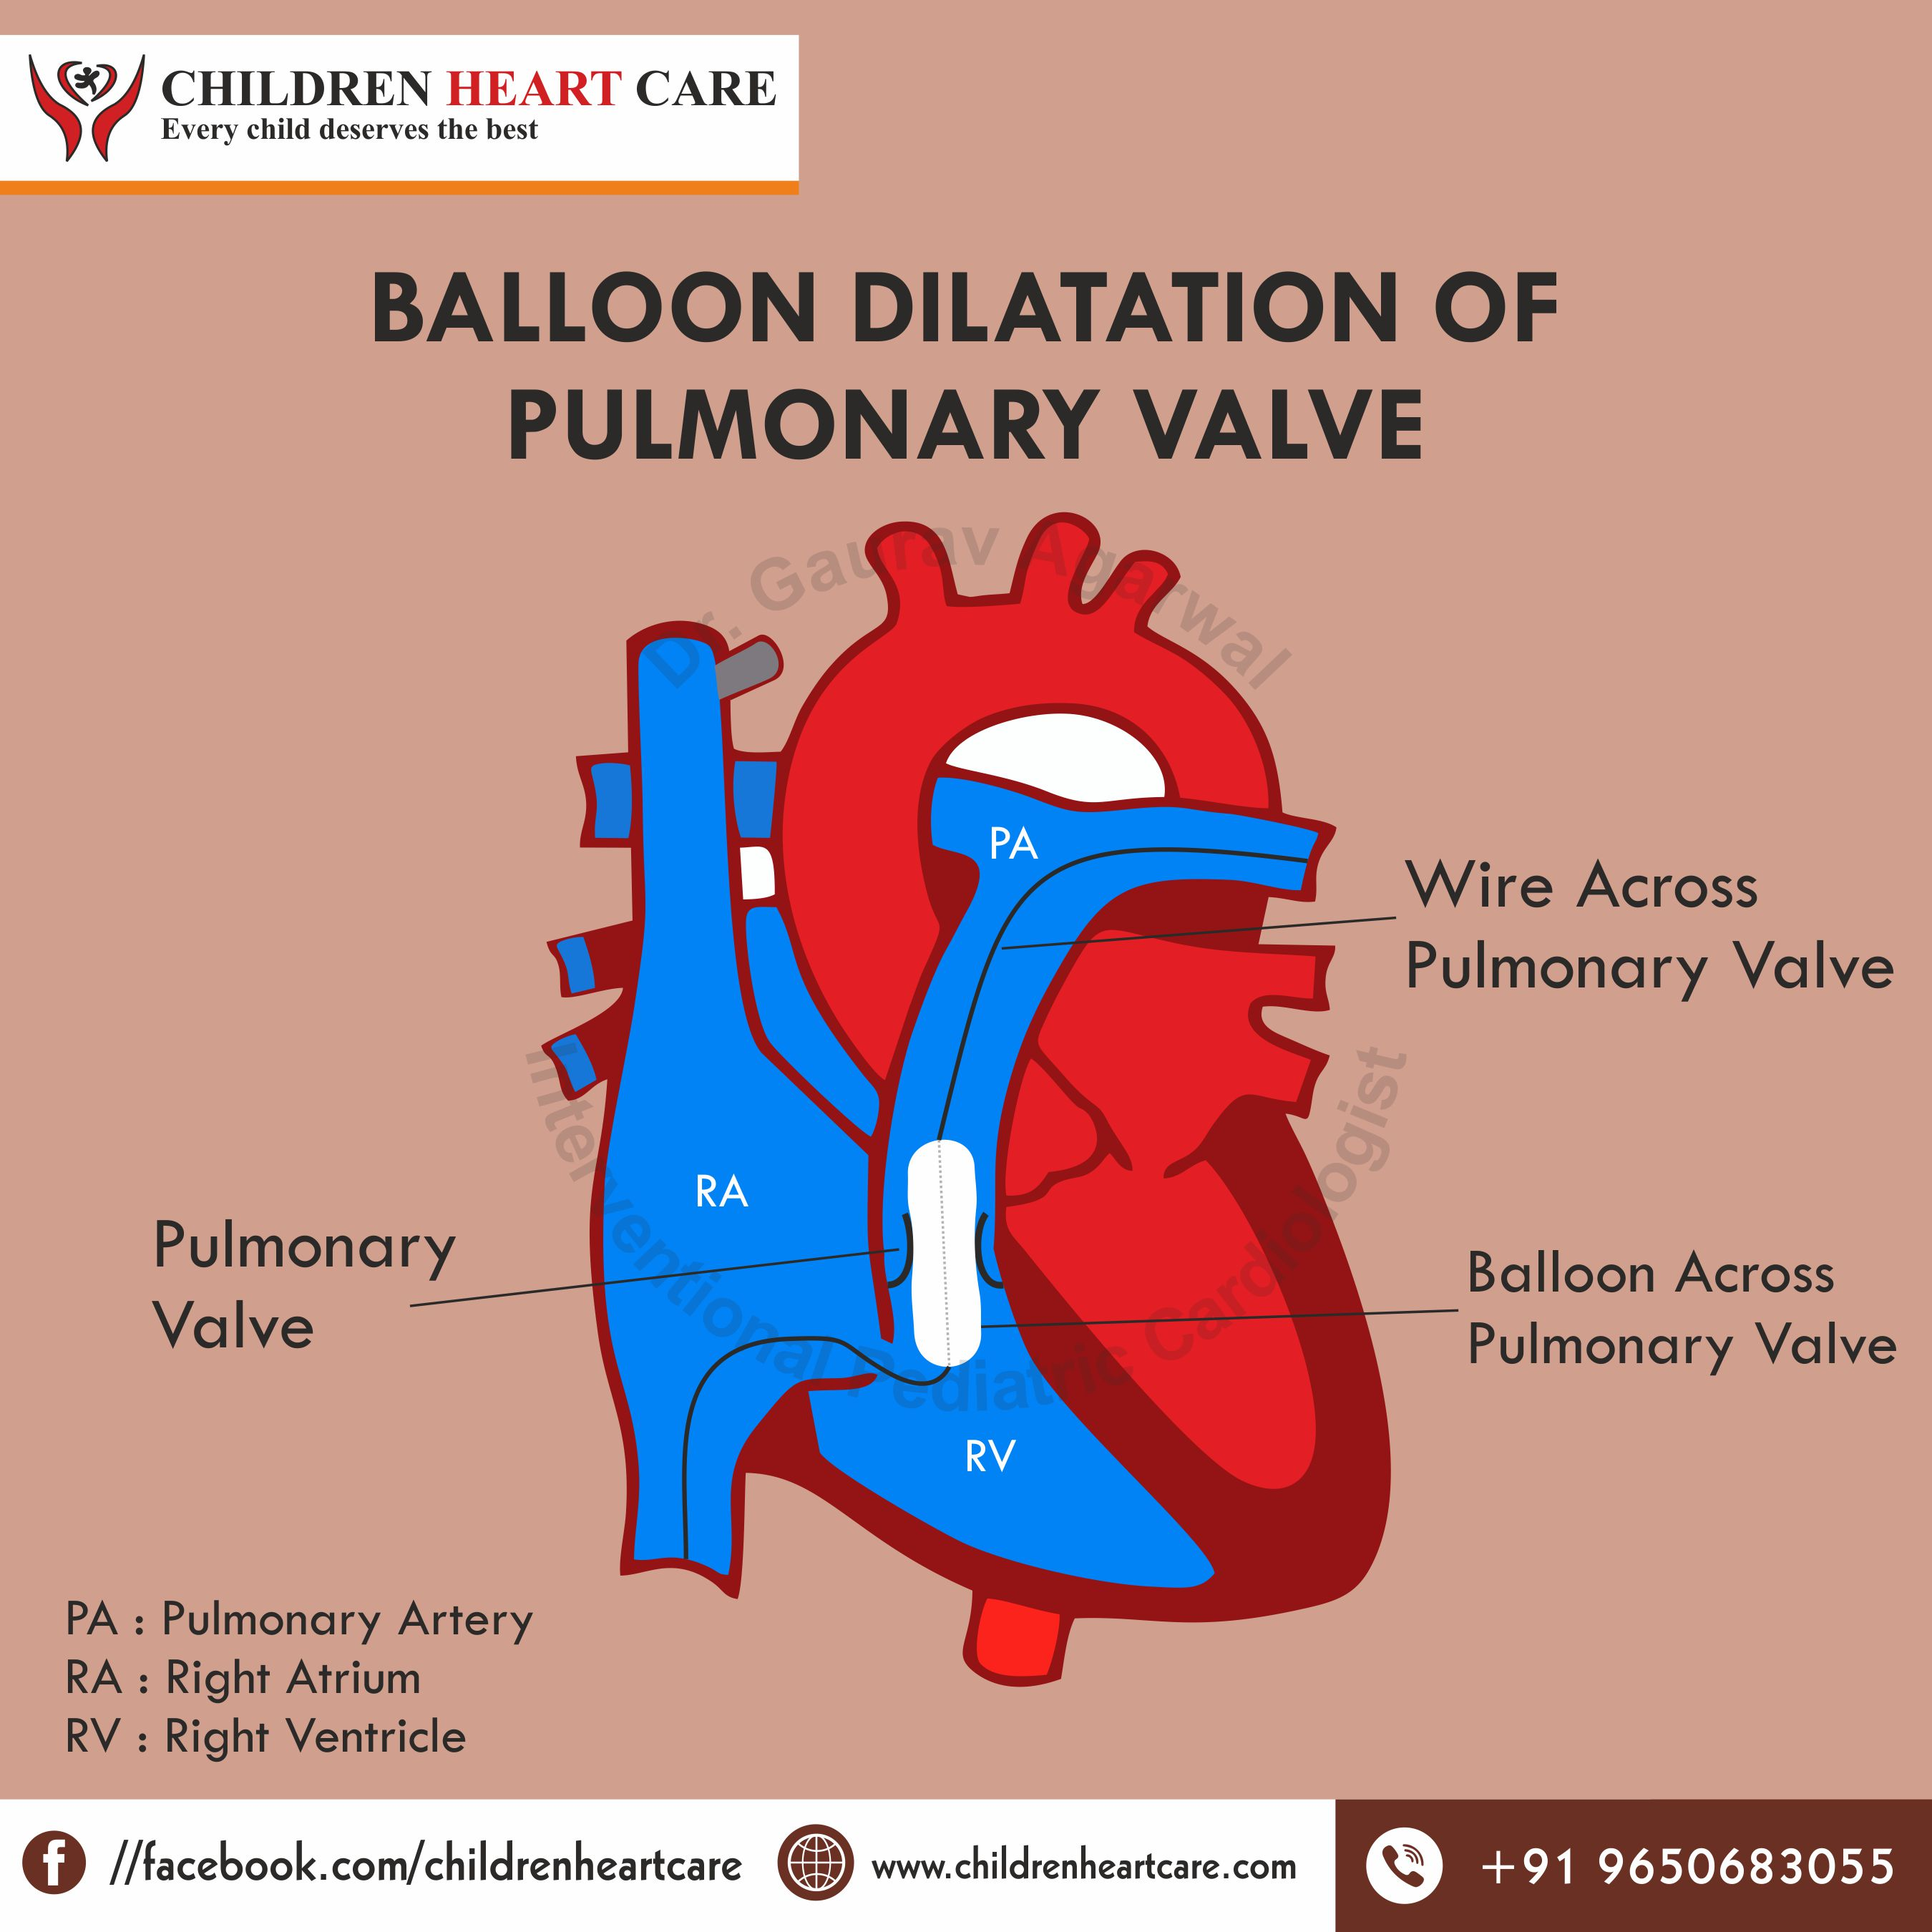 BALLOON DILATATION OF PULMONARY VALVE